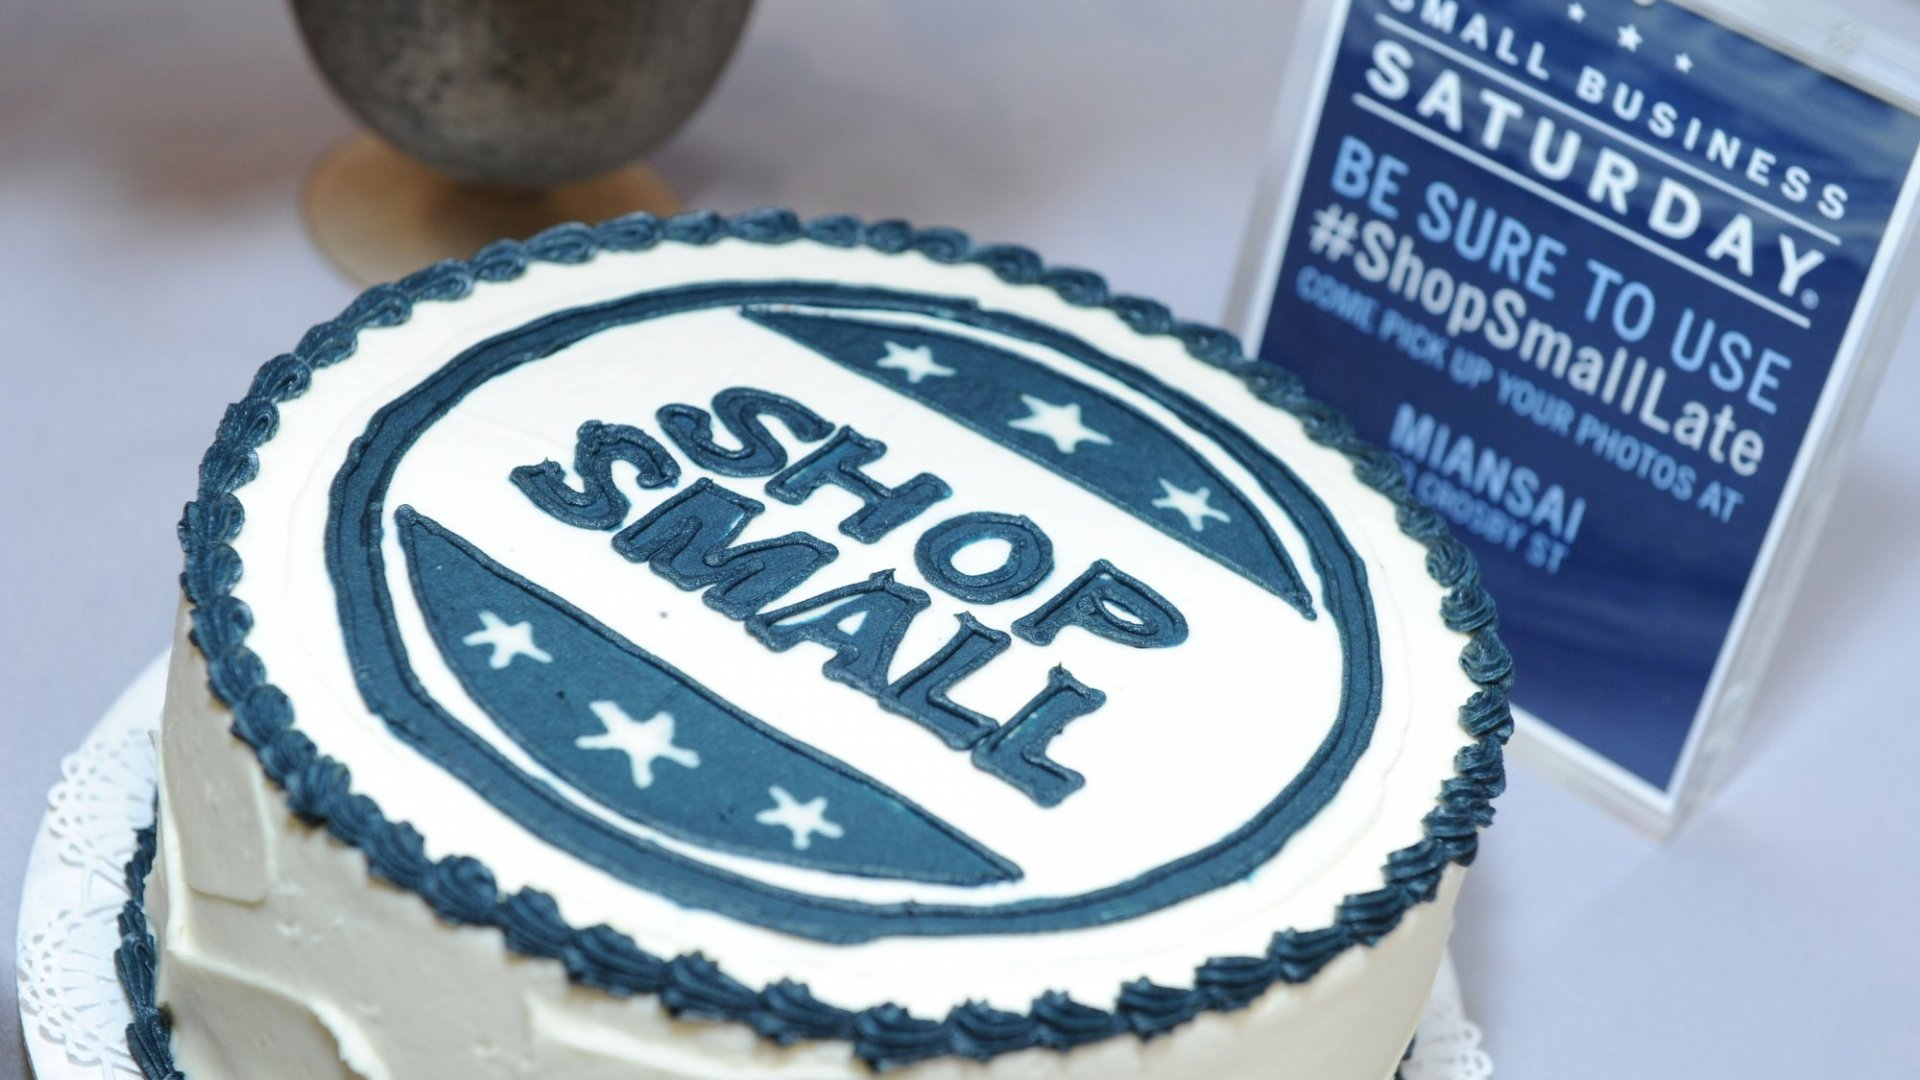 7 Things to Know About Small Business Saturday